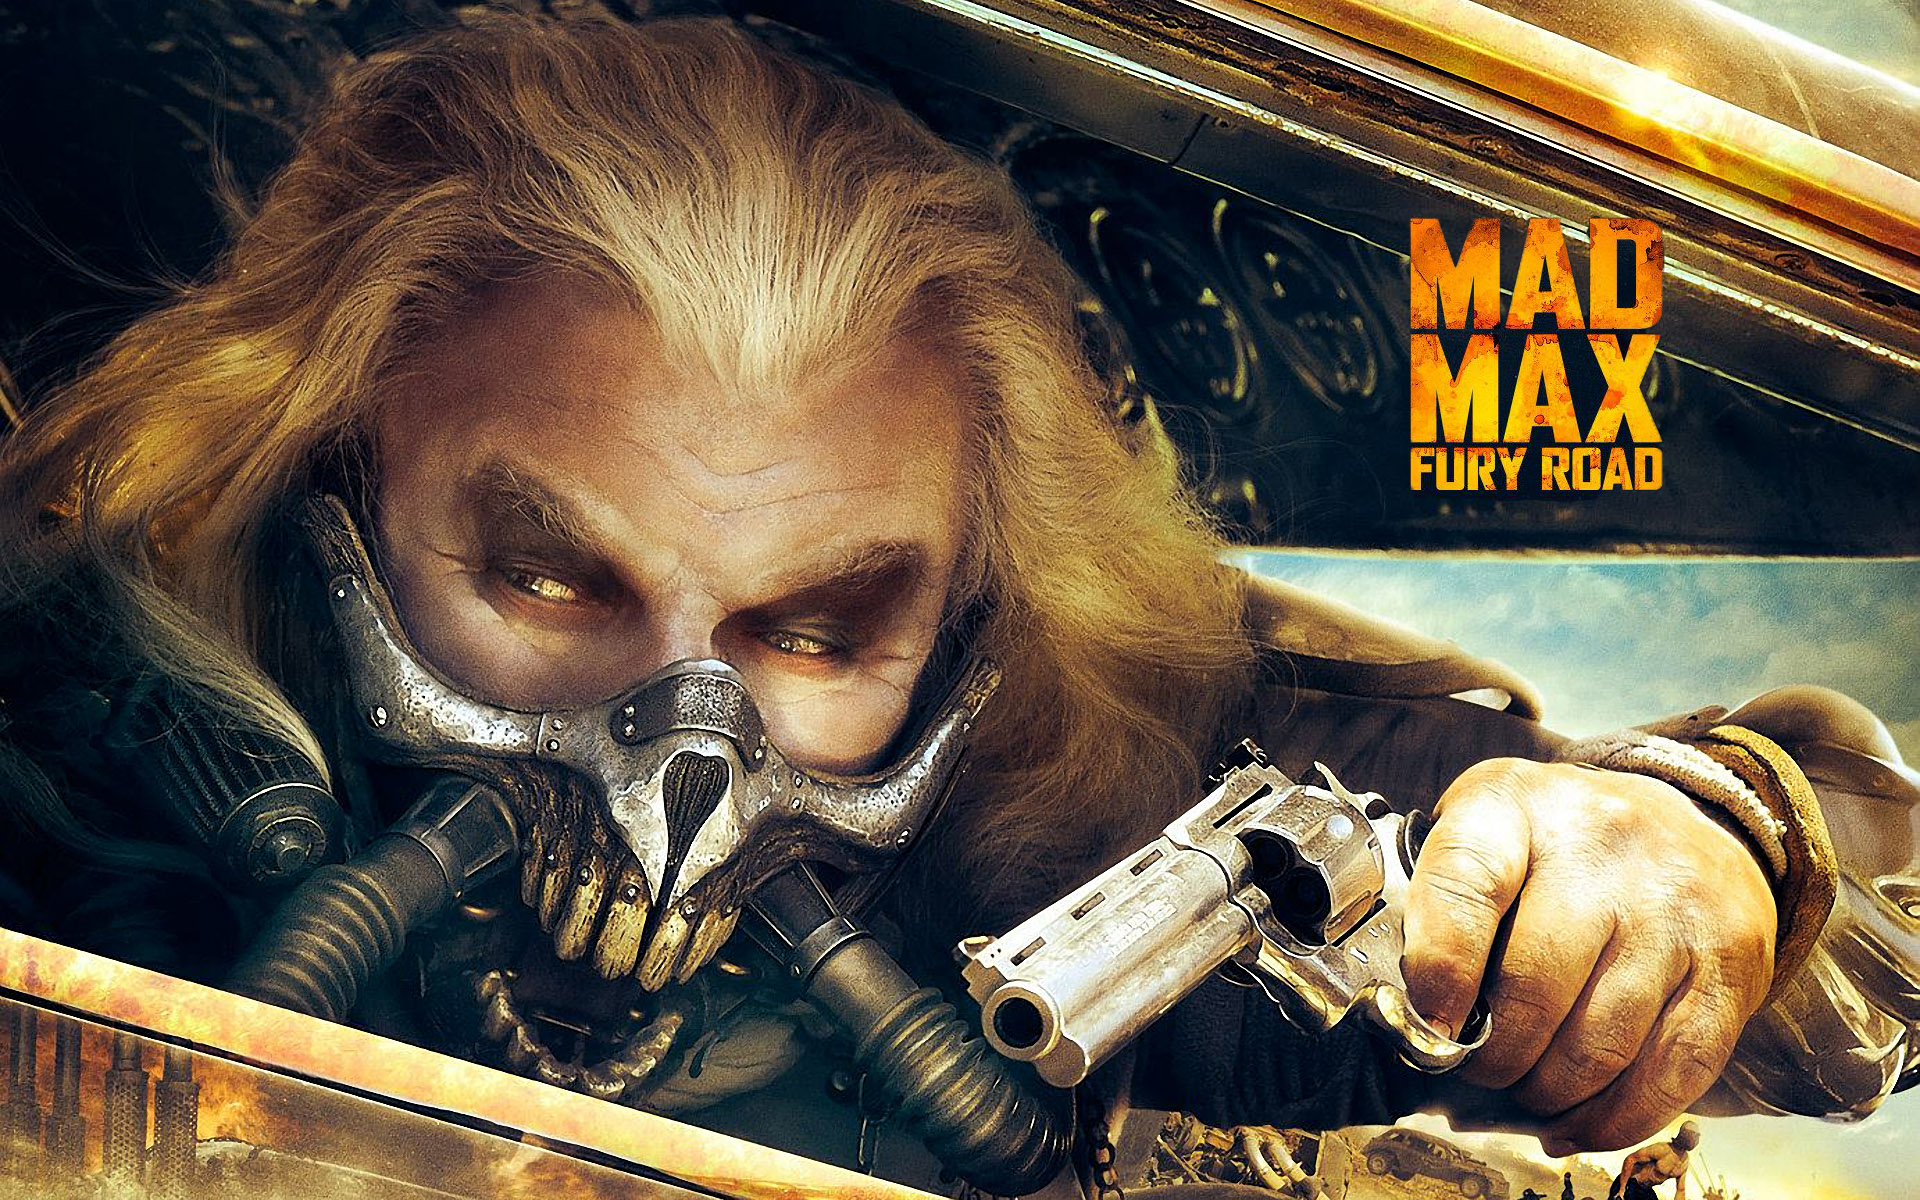 Top 12 Mad Max Furry Road HD wallpapers.